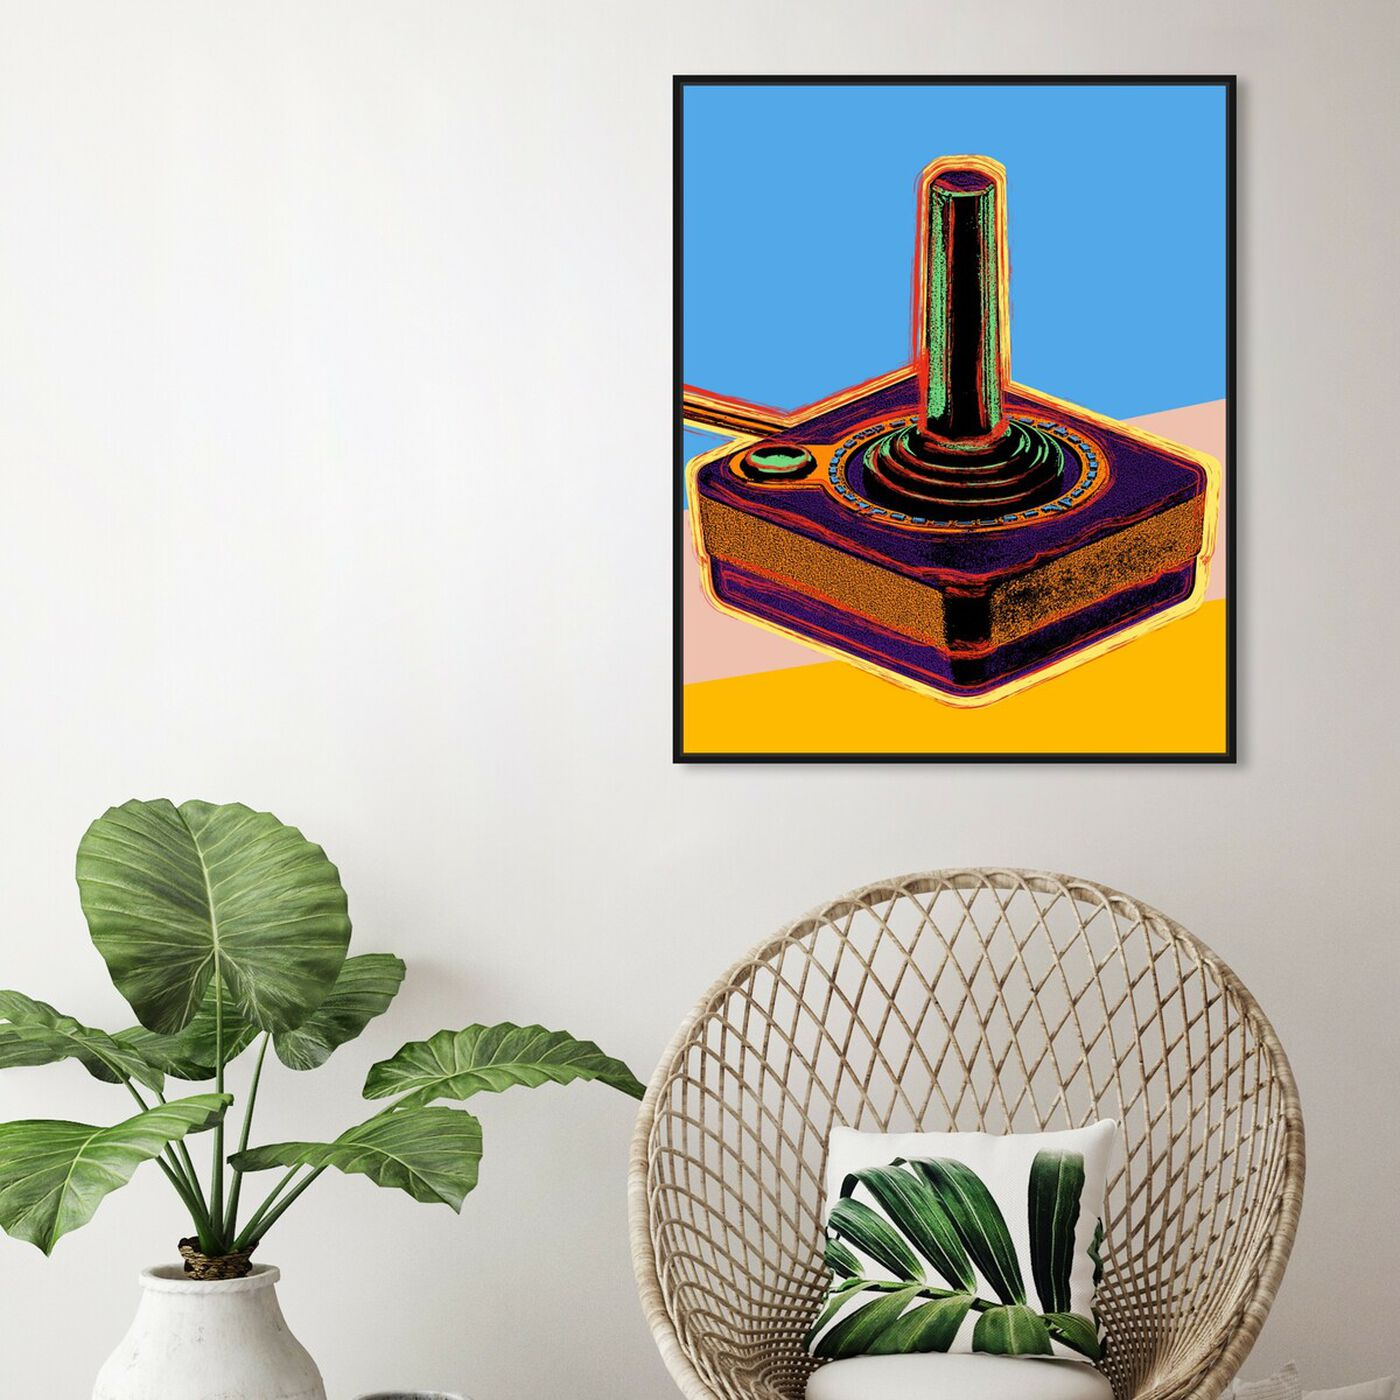 Hanging view of Warhol style Joystick featuring entertainment and hobbies and video games art.